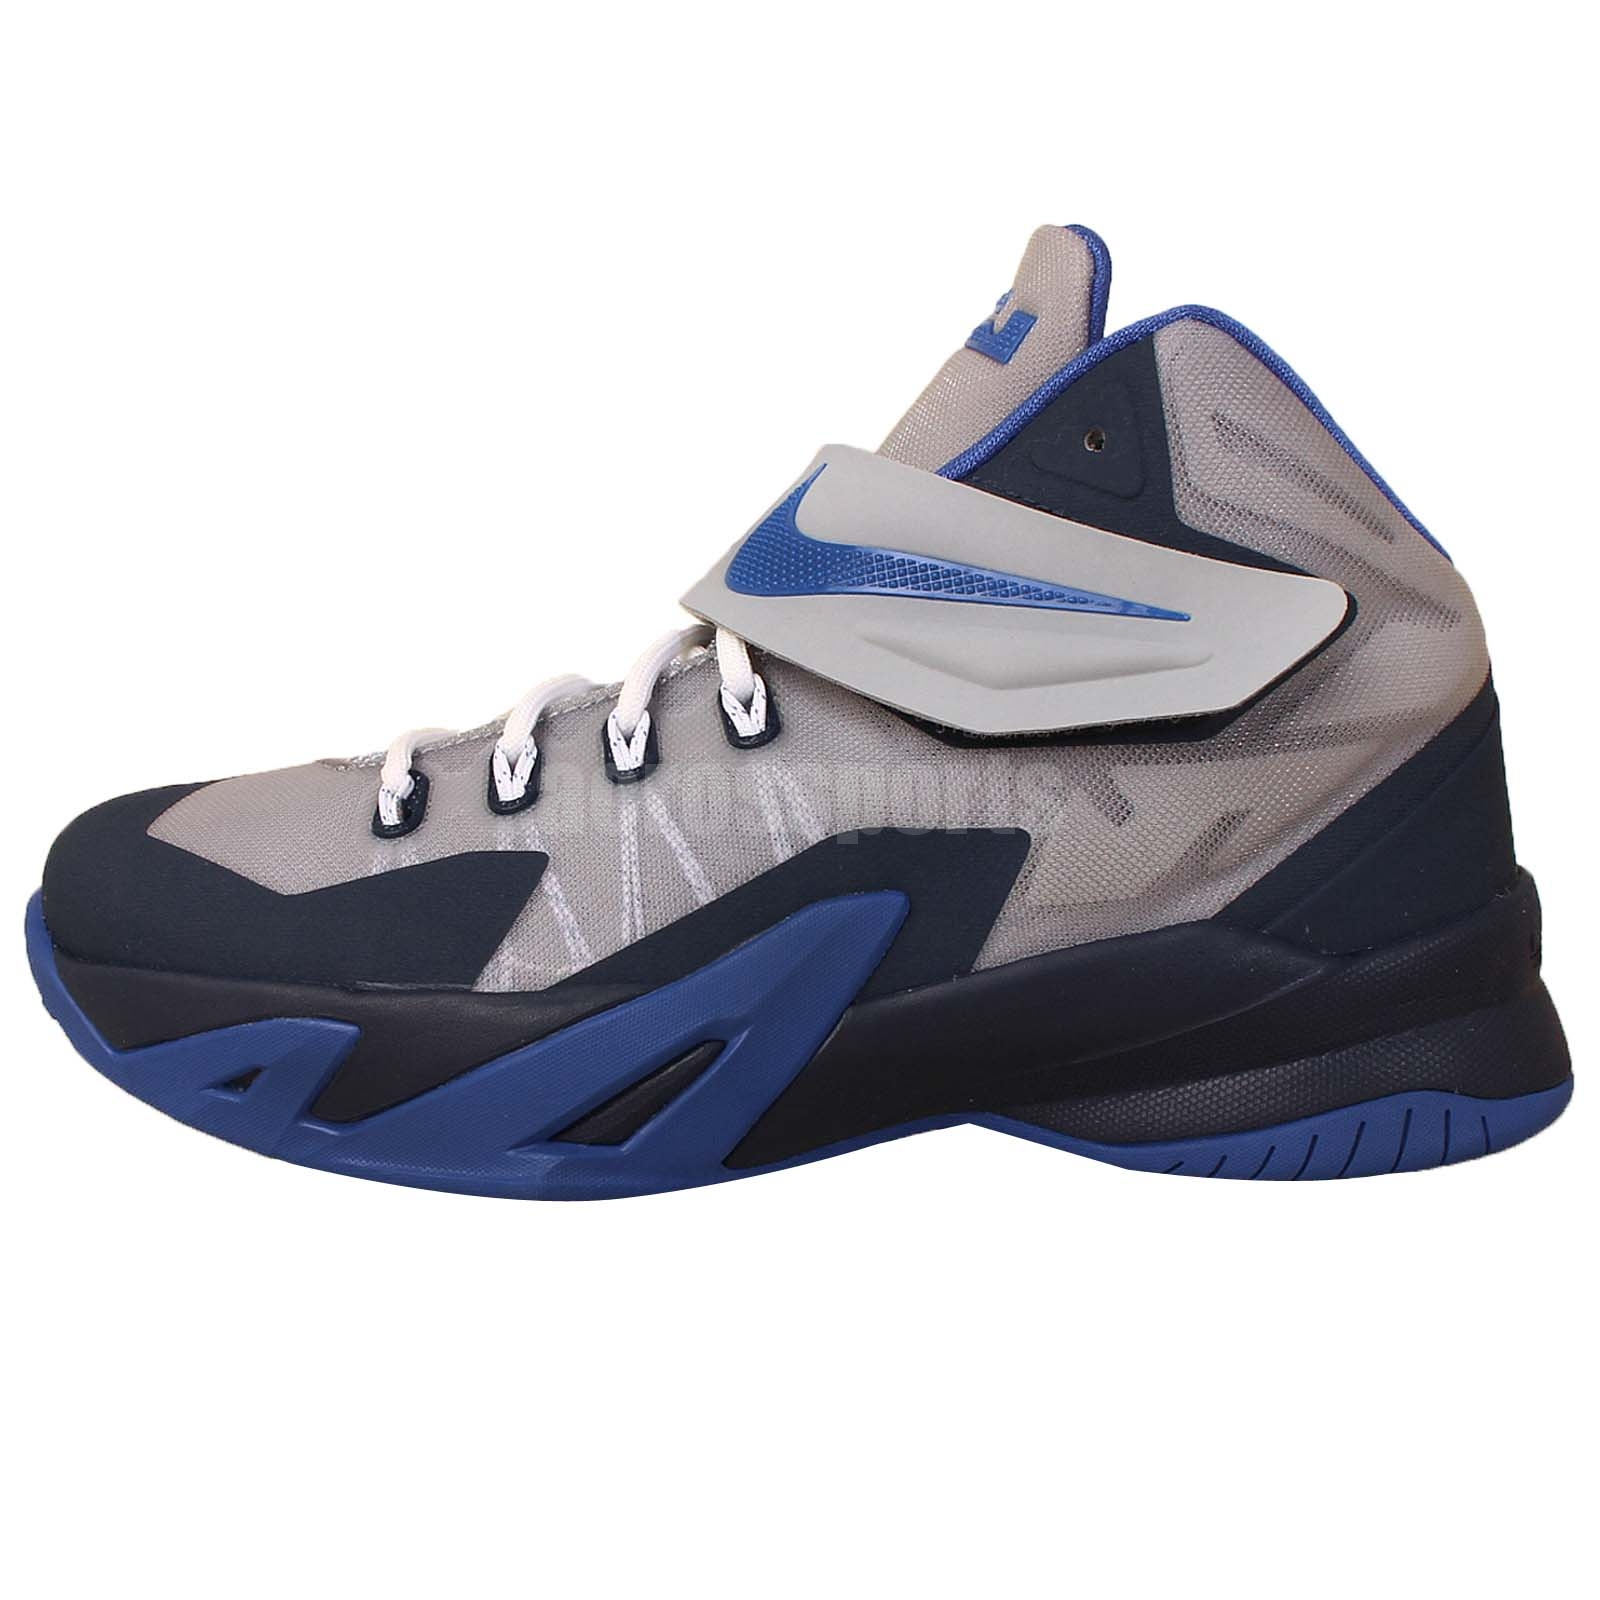 Nike Soldier VIII 8 GS Lebron James LBJ Youth Kids Basketball ...